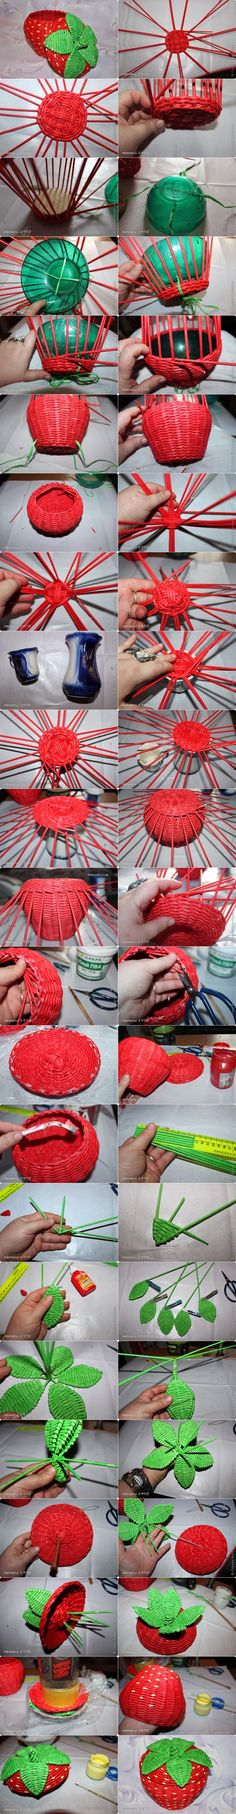 DIY Woven Strawberry Shaped Basket from Recycled Newspaper | www.FabArtDIY.com LIKE Us on Facebook ==> https://www.facebook.com/FabArtDIY